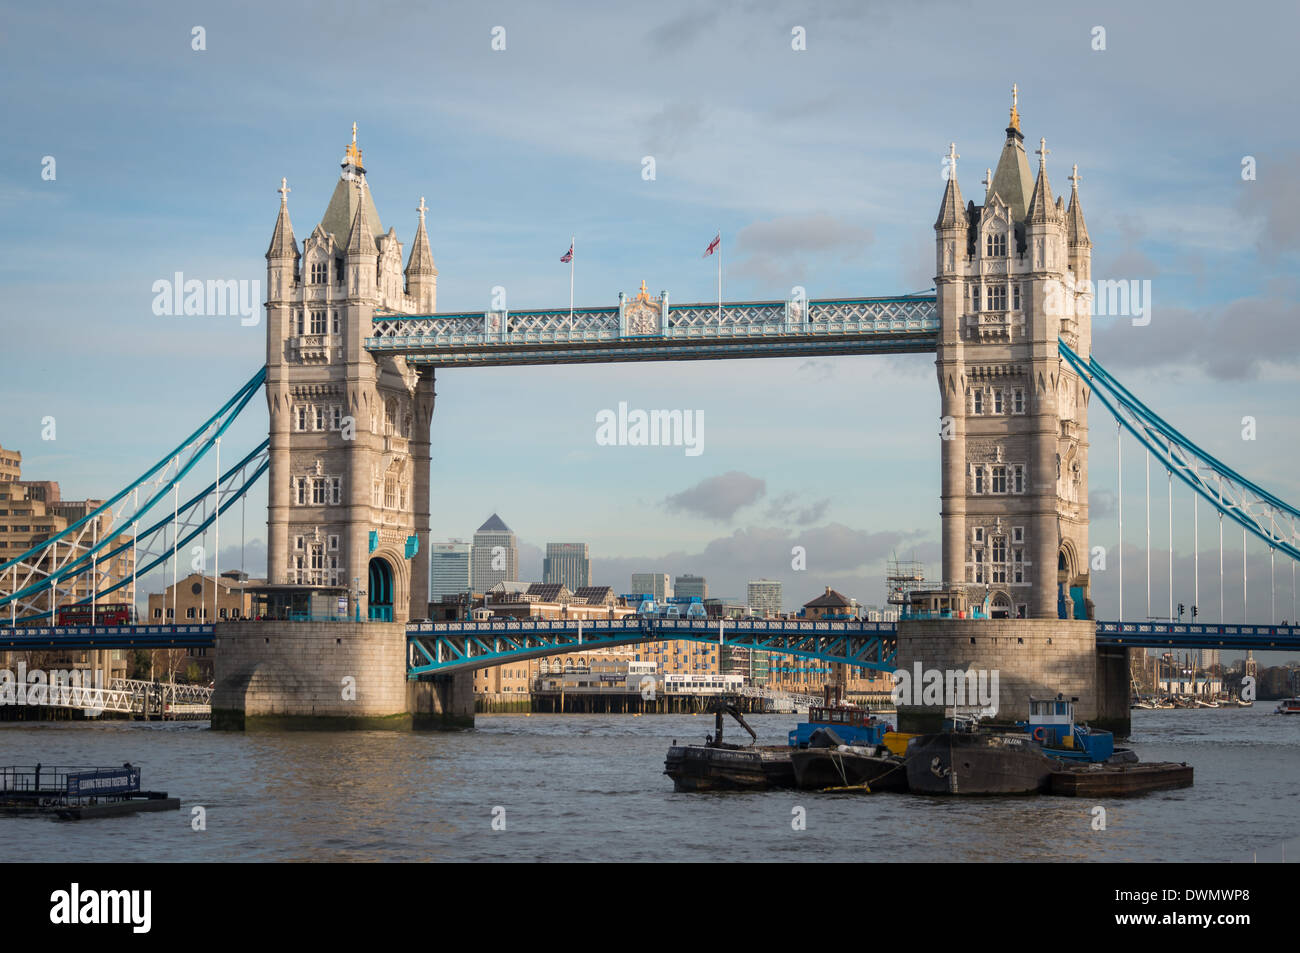 <b>London</b> Wallpapers and <b>London</b> Backgrounds 1 of 1 | Places I'-d Like ...